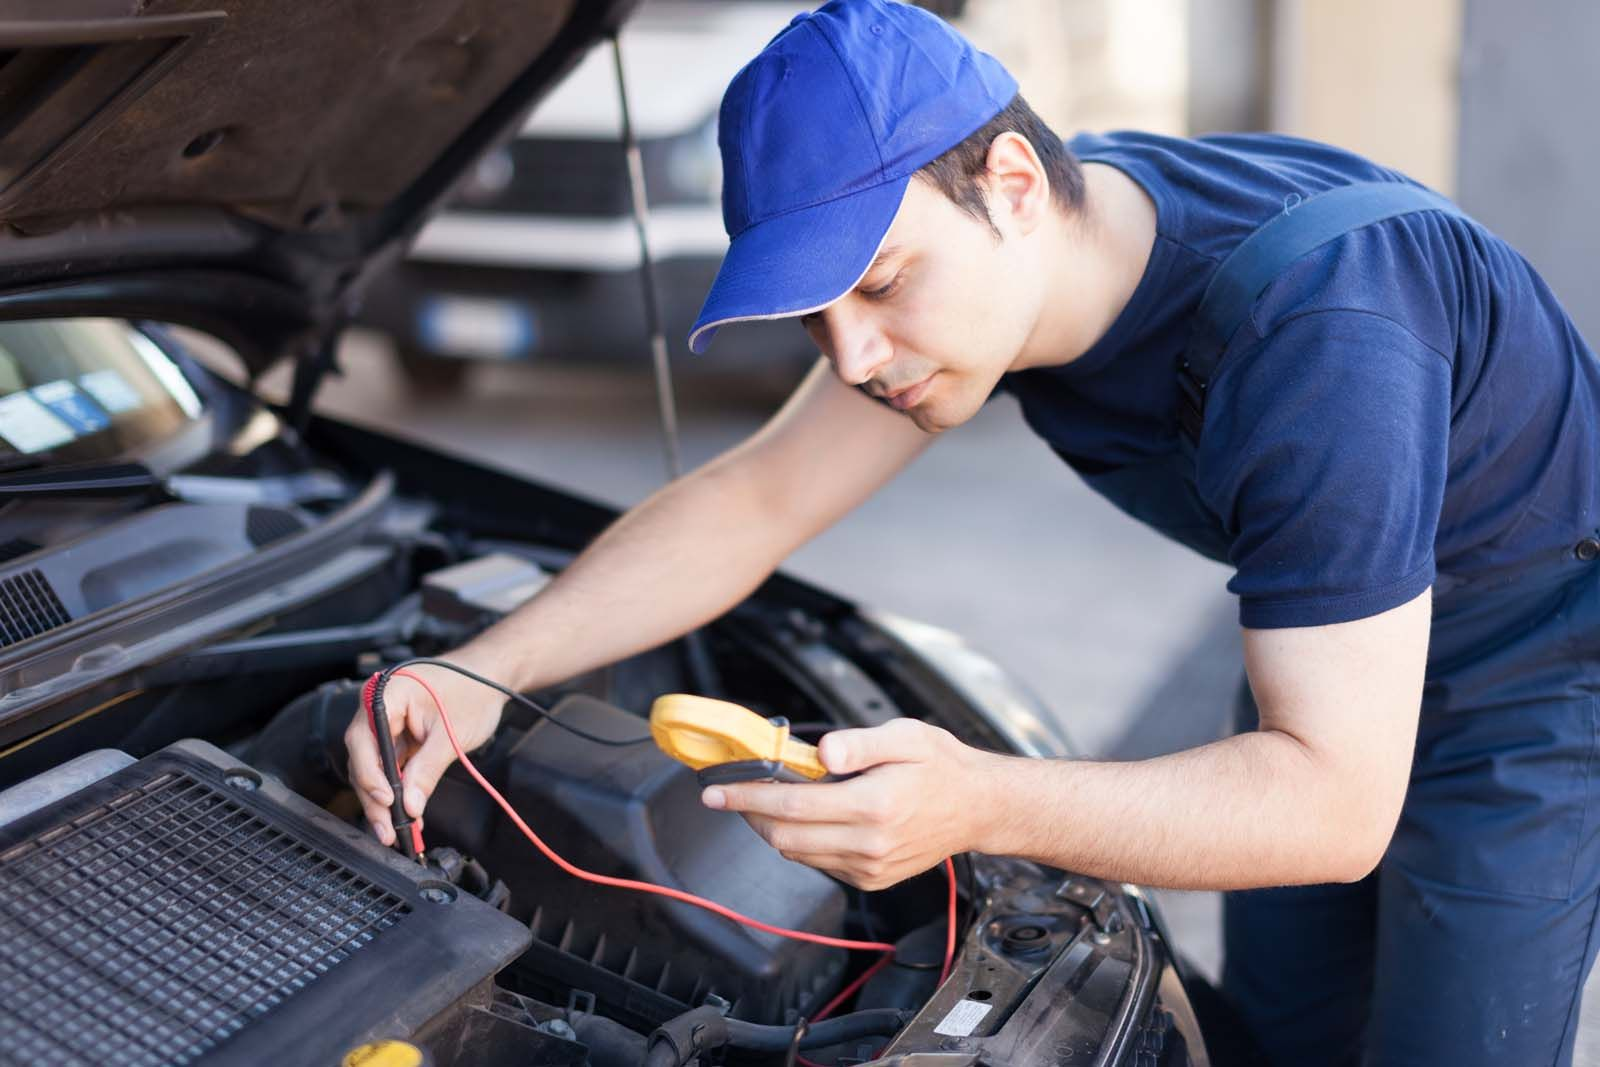 Do you need a mobile auto electrician in Gold coast? Then